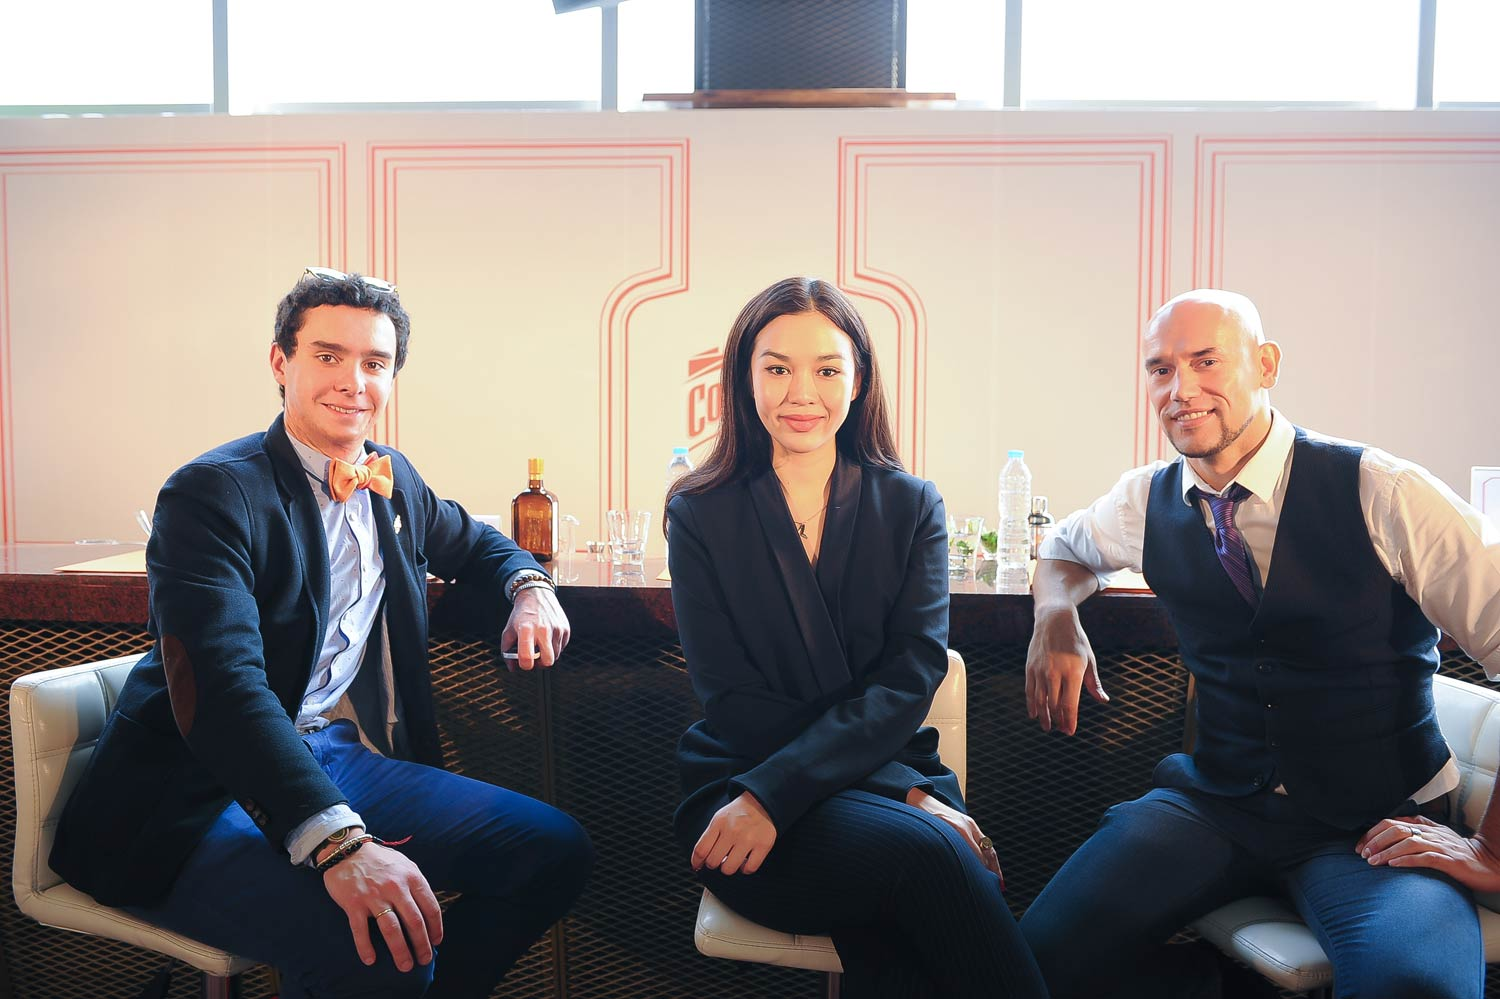 The 3 judges for the La Maison Cointreau Regional Finals (L-to-R) Alfred Cointreau, Duang Poshnayonda and Joseph Boroski